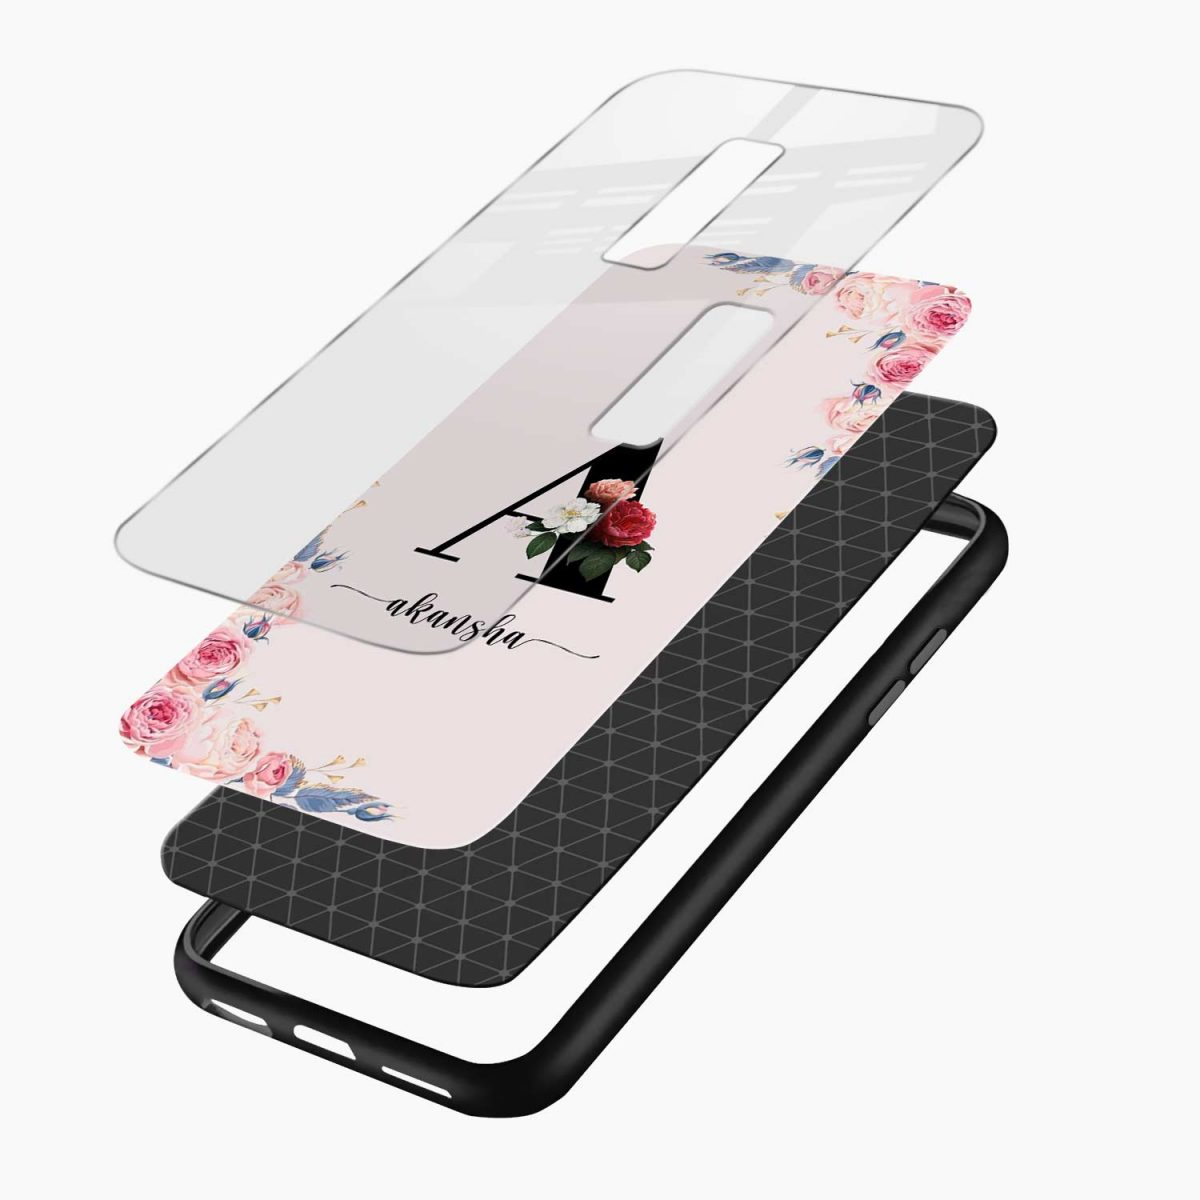 floral name personalised layers view vivo v17 plug back cover